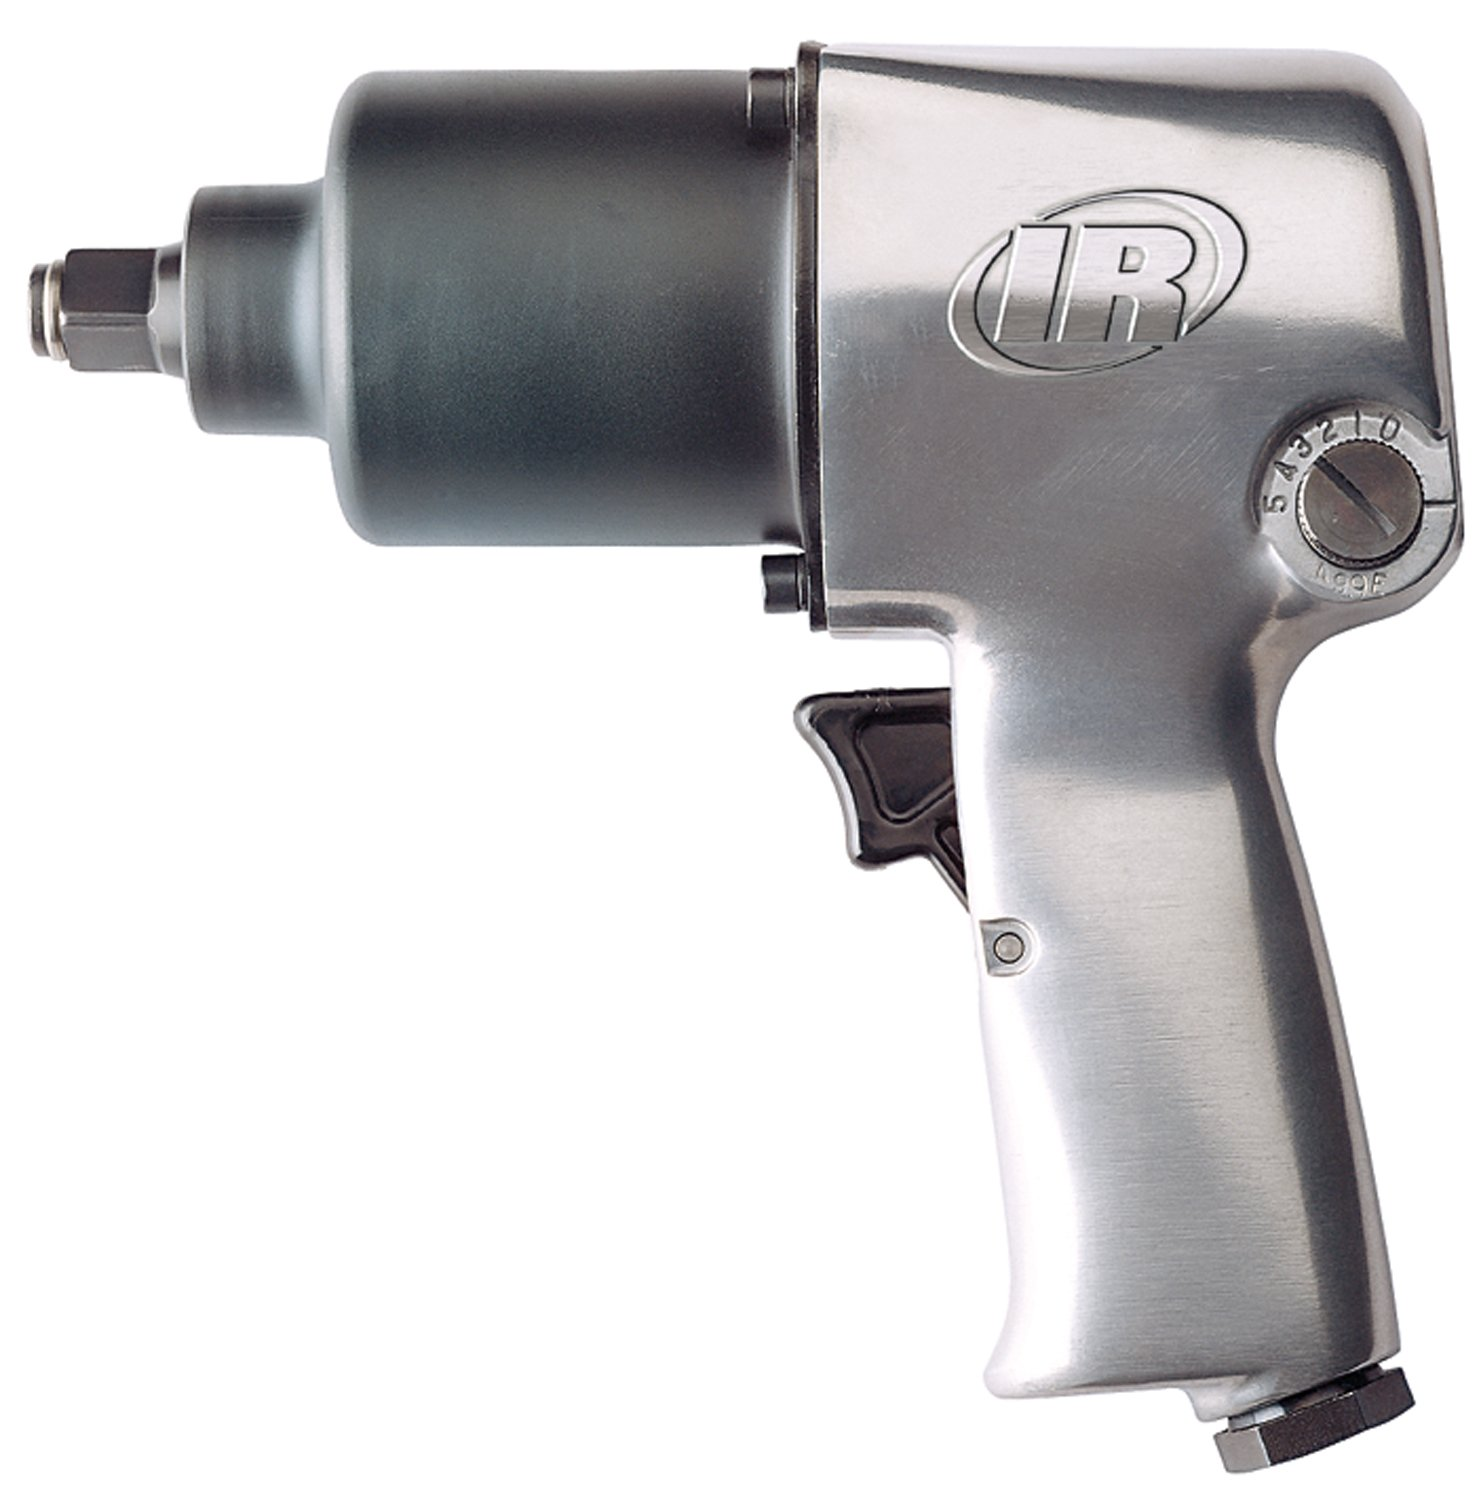 Ingersoll 231C Super Duty Impact Wrench